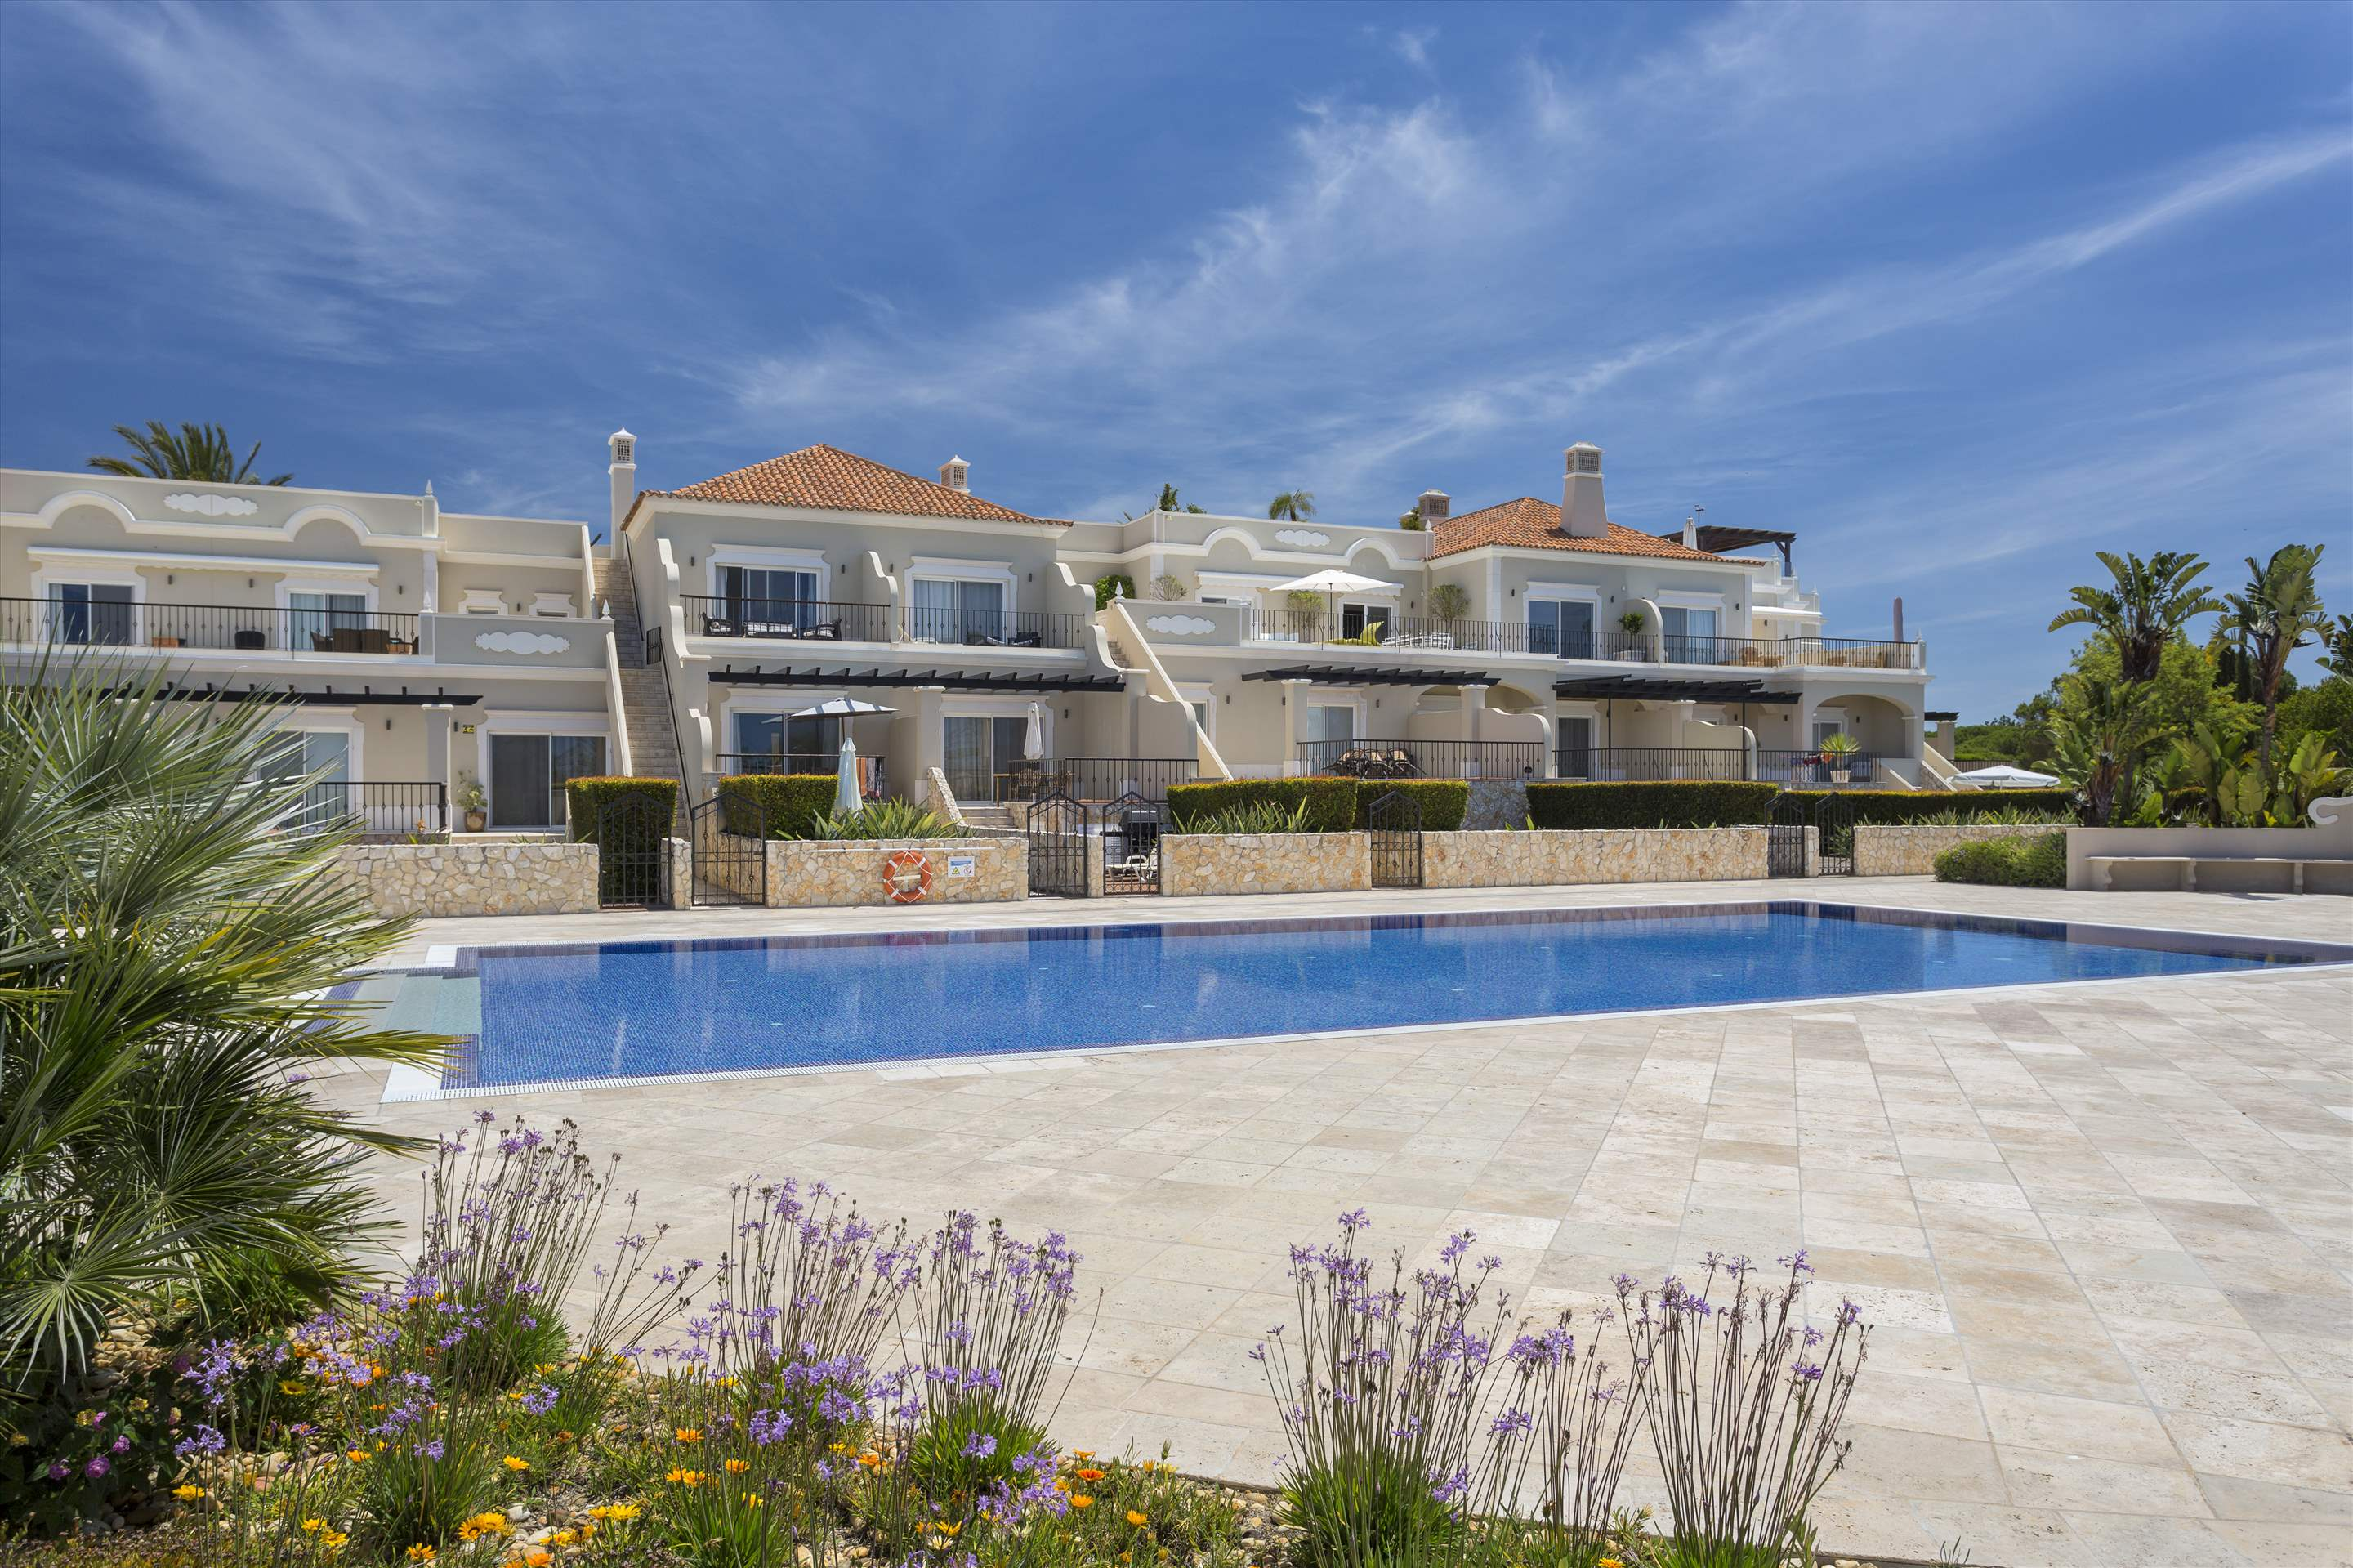 Penthouse Vista Mar, 2 bedroom apartment in Quinta do Lago, Algarve